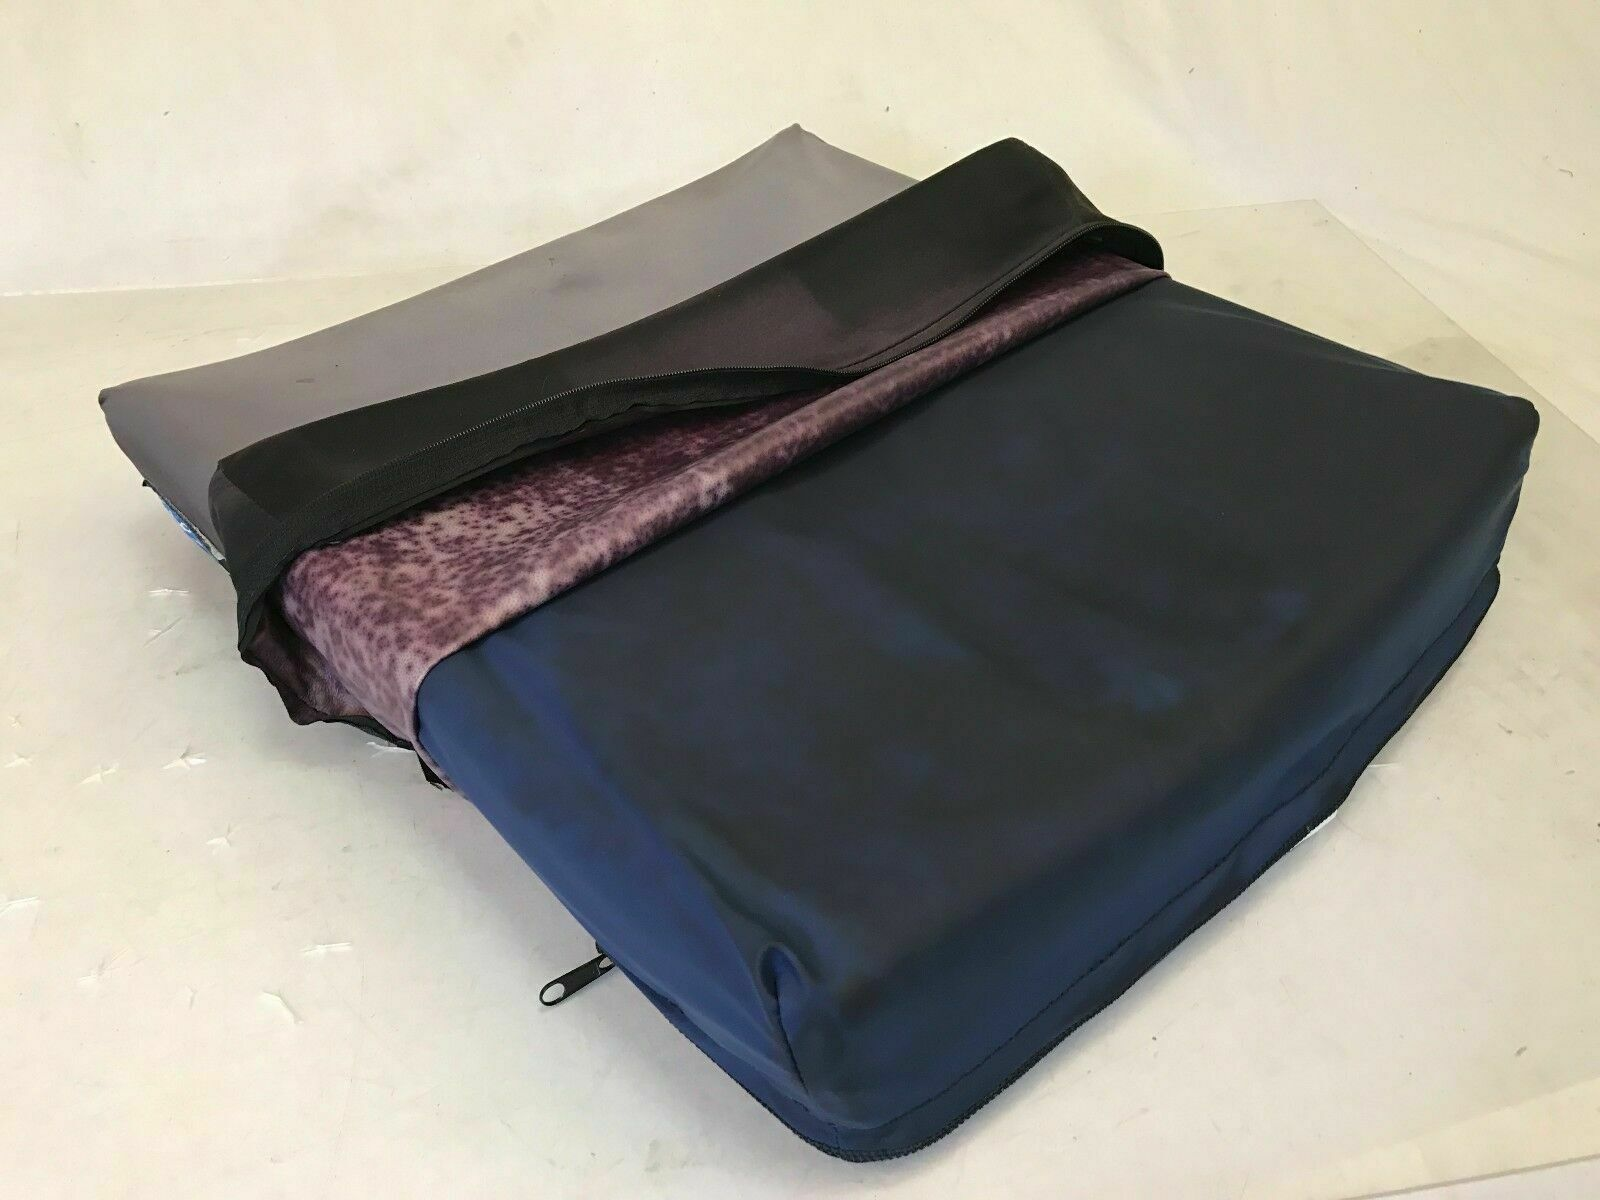 Invacare - Infinity LC Seat Cushion - 18x18 for Wheelchairs